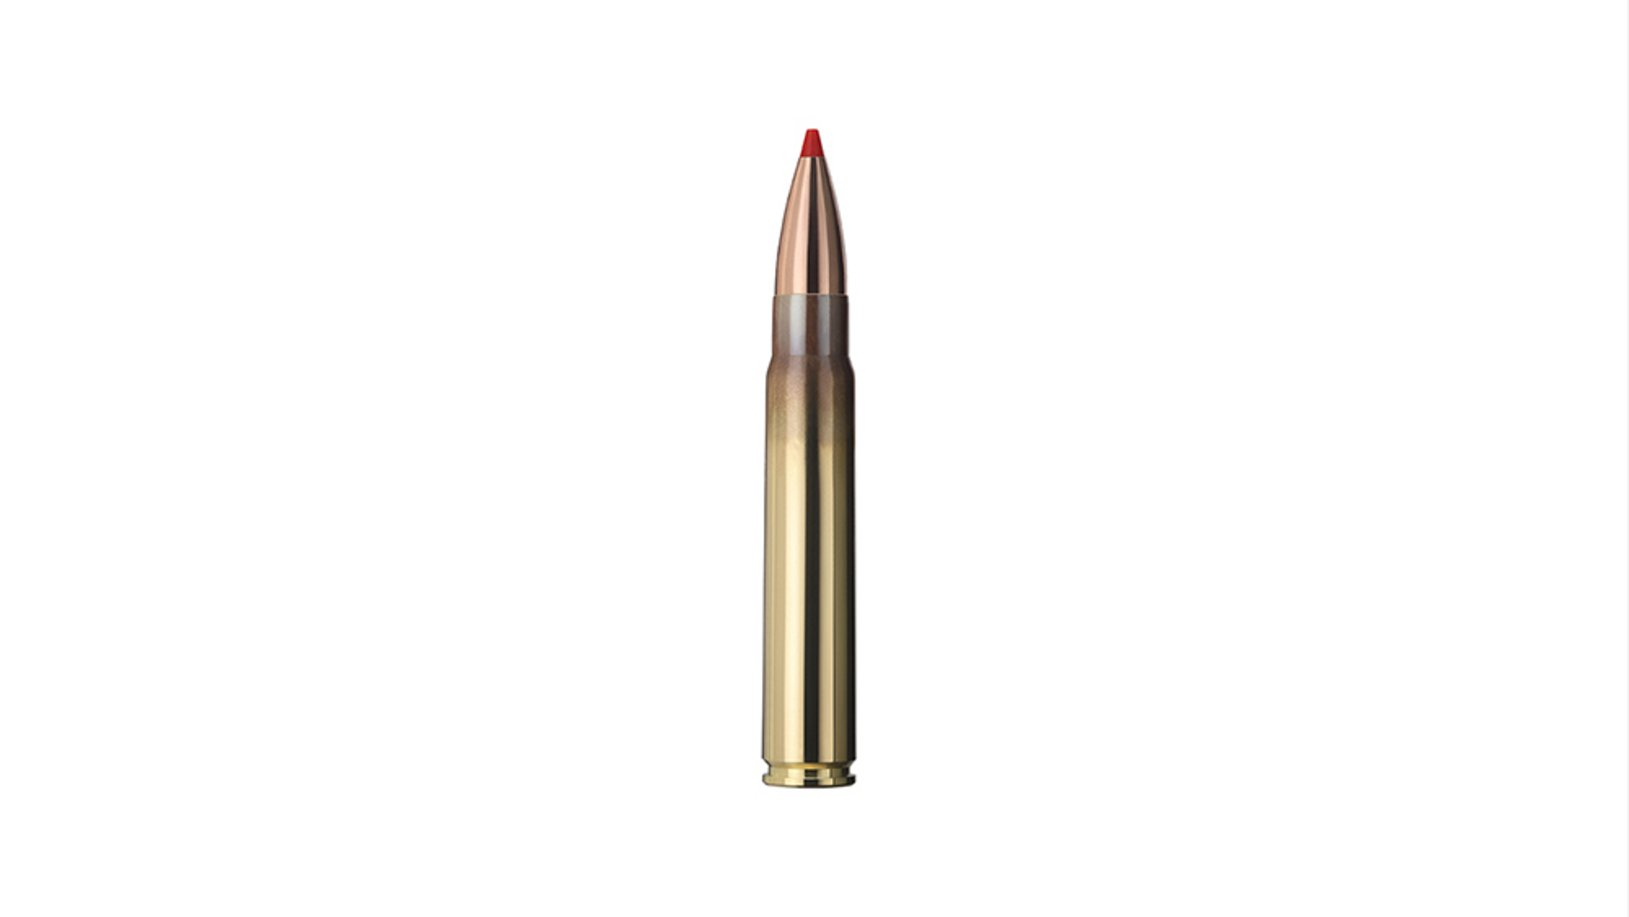 Single bullet view of GECO 9,3x62 EXPRESS 16,5g